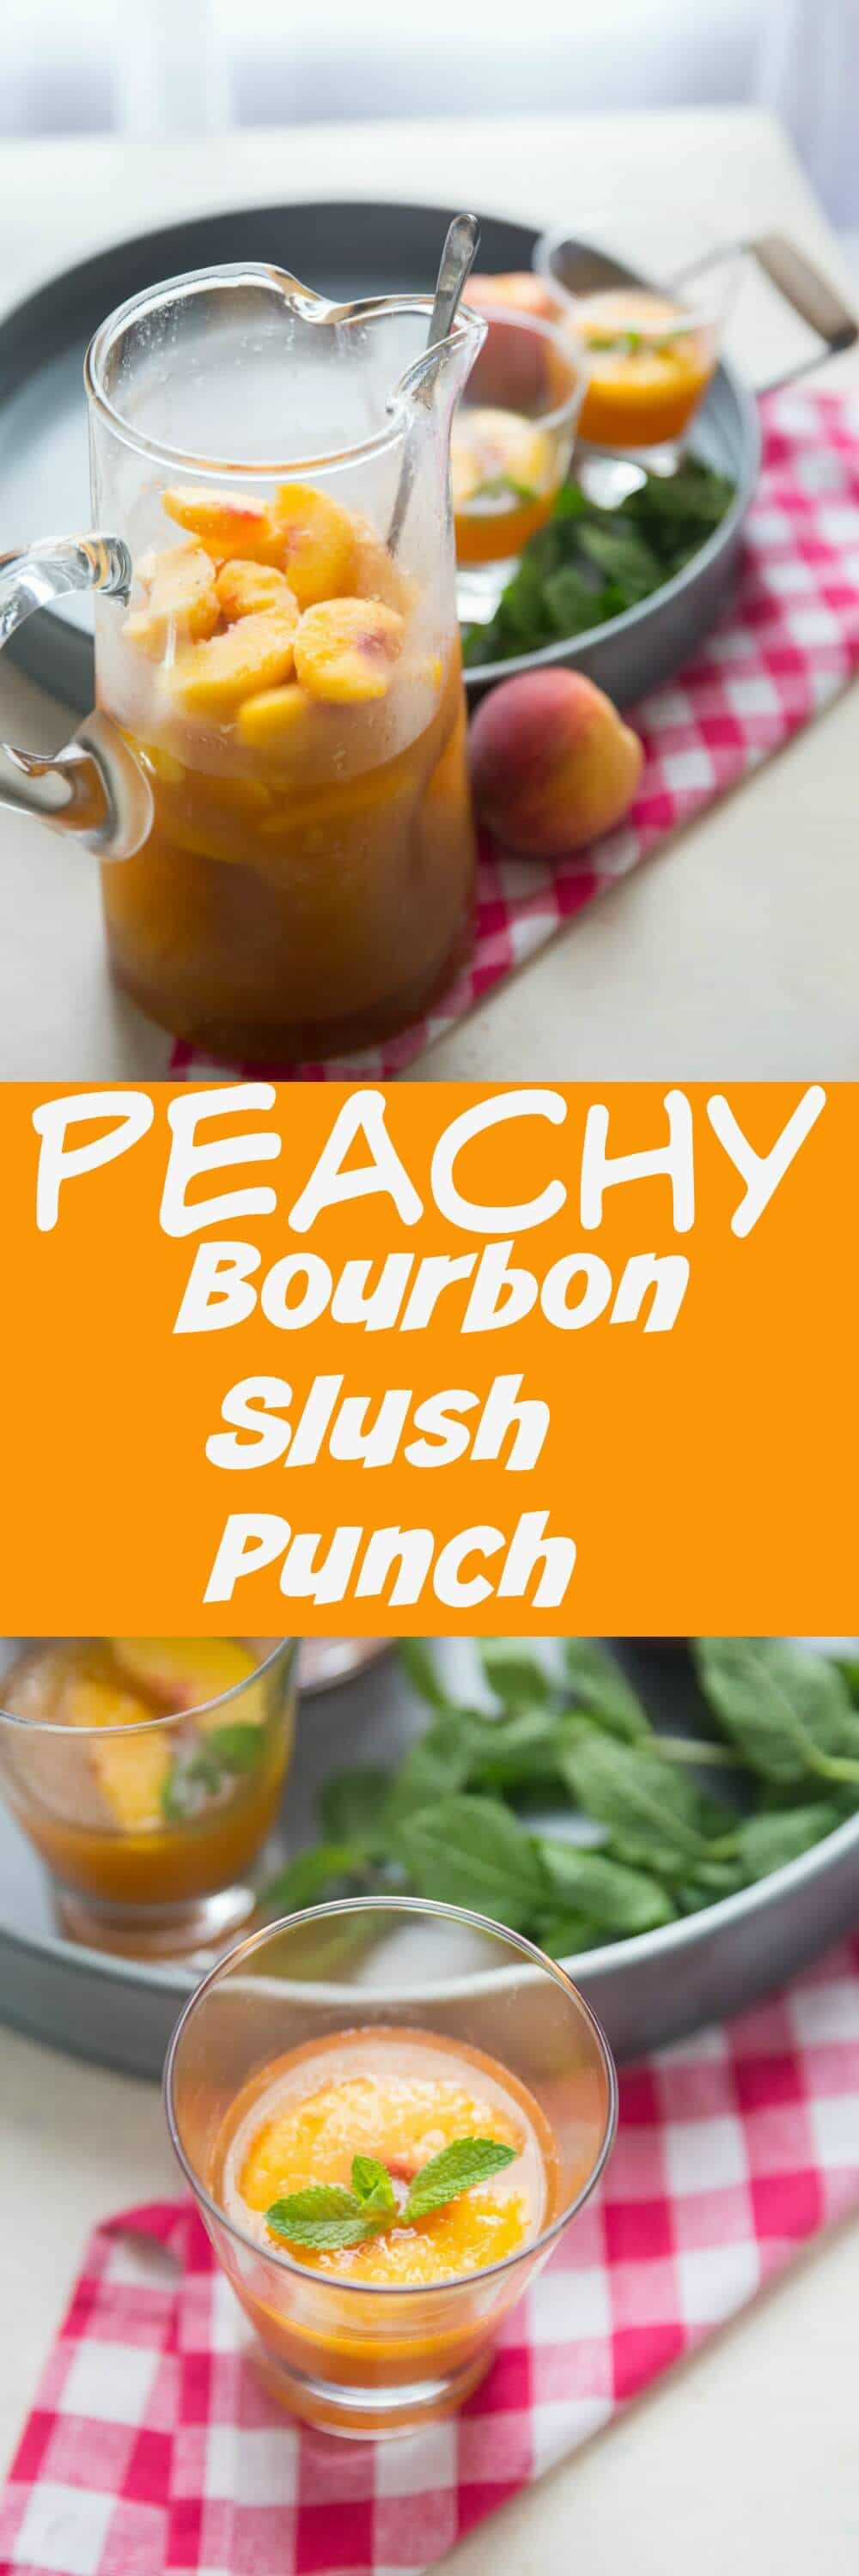 Nothing beats a cool bourbon slush punch for your summer party! This peachy version shows off the summery fruit of summer in each and every glass!